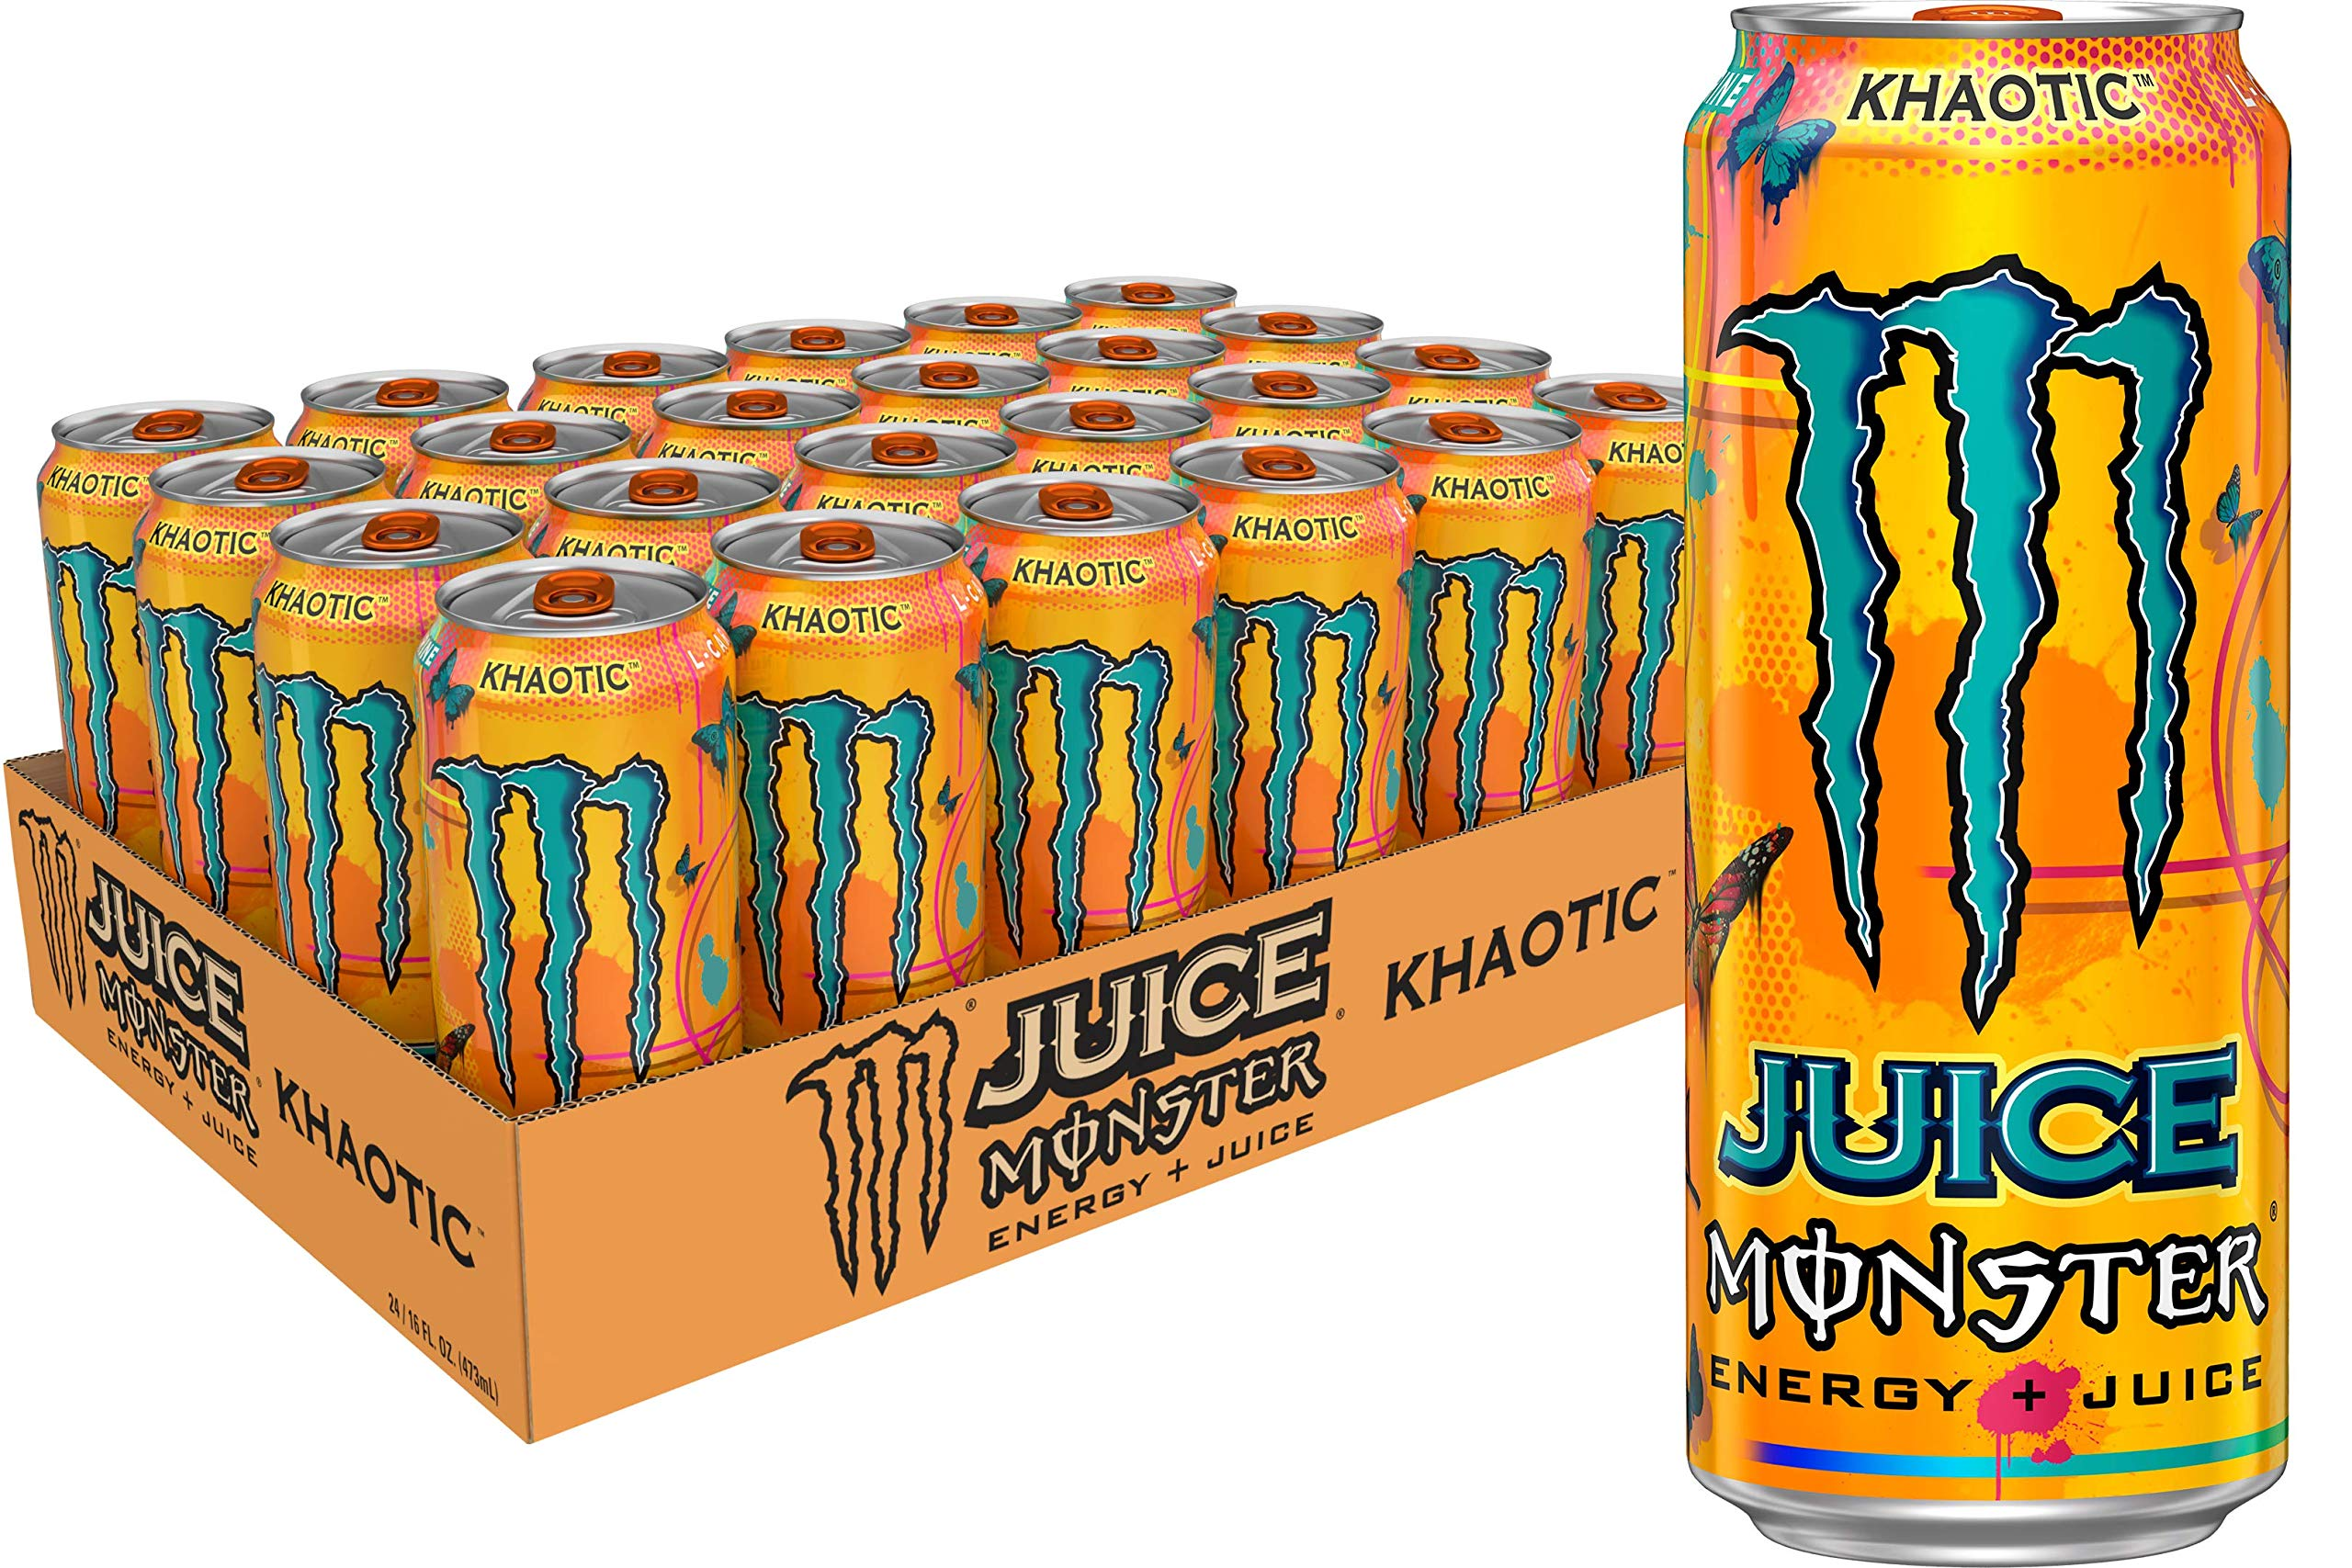 Monster Energy Juice Monster, Energy + Juice, Khaotic, 16 Ounce (Pack of 24)